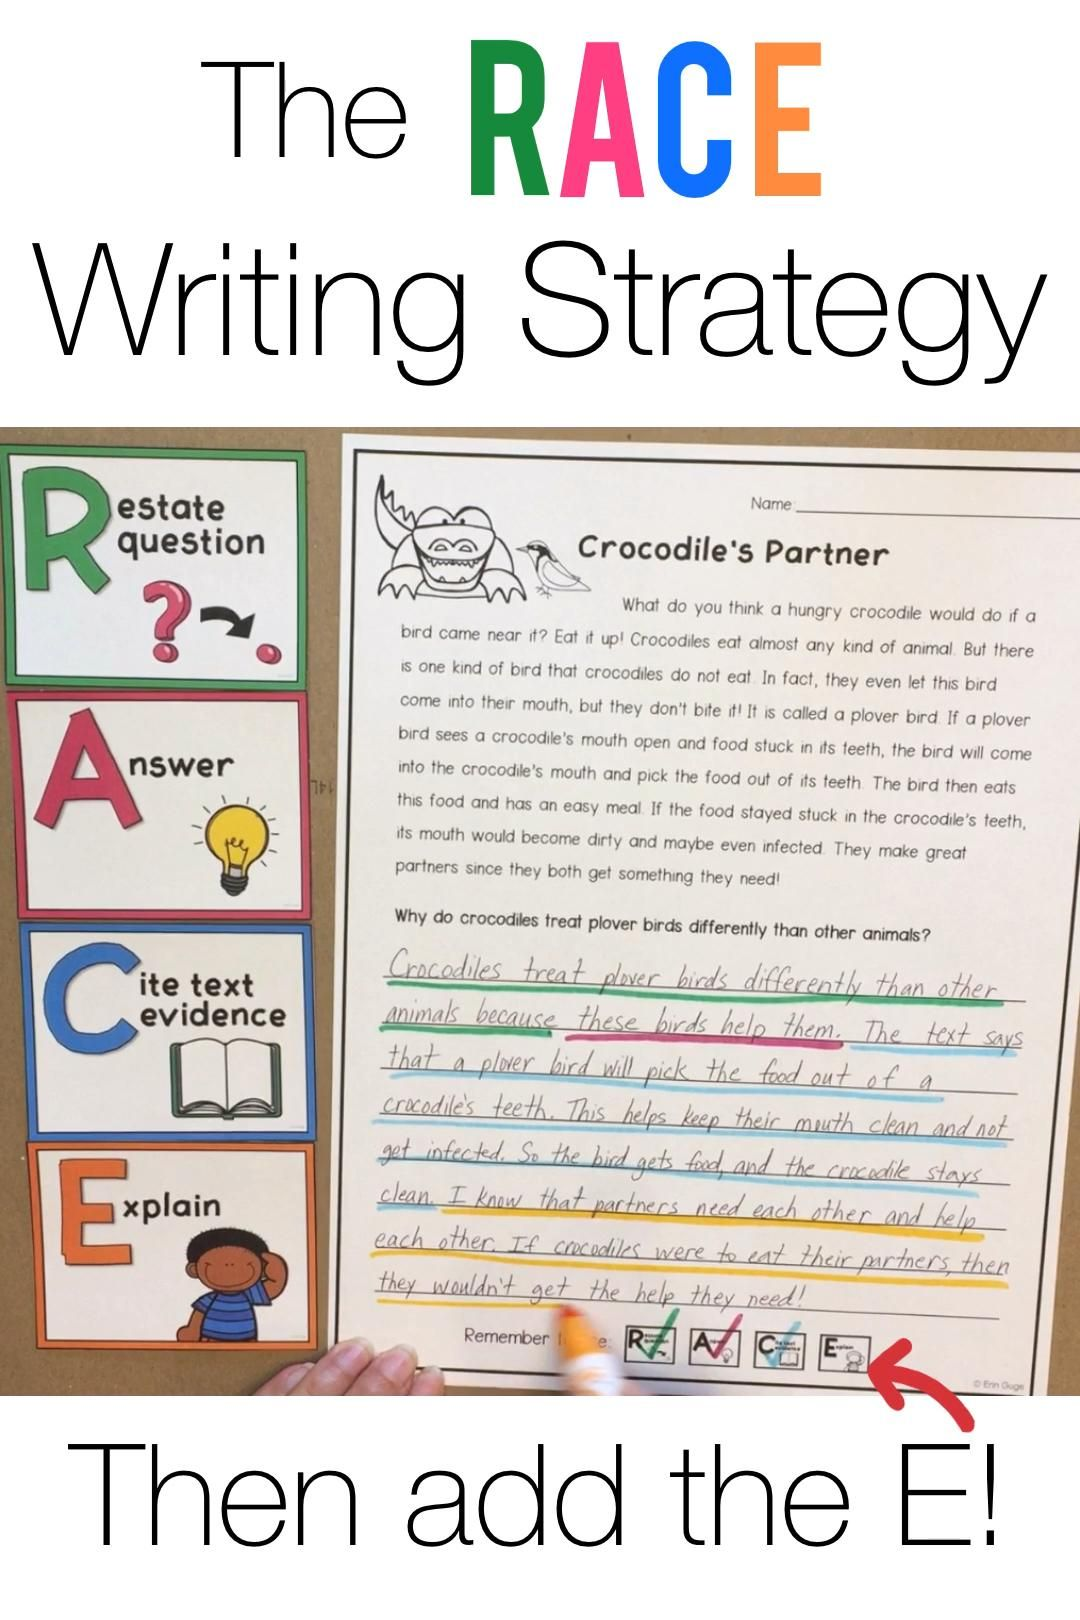 Race Writing Strategy For Text Dependent Questions Video Races Writing Strategy Race Writing Writing Strategies [ 1620 x 1080 Pixel ]